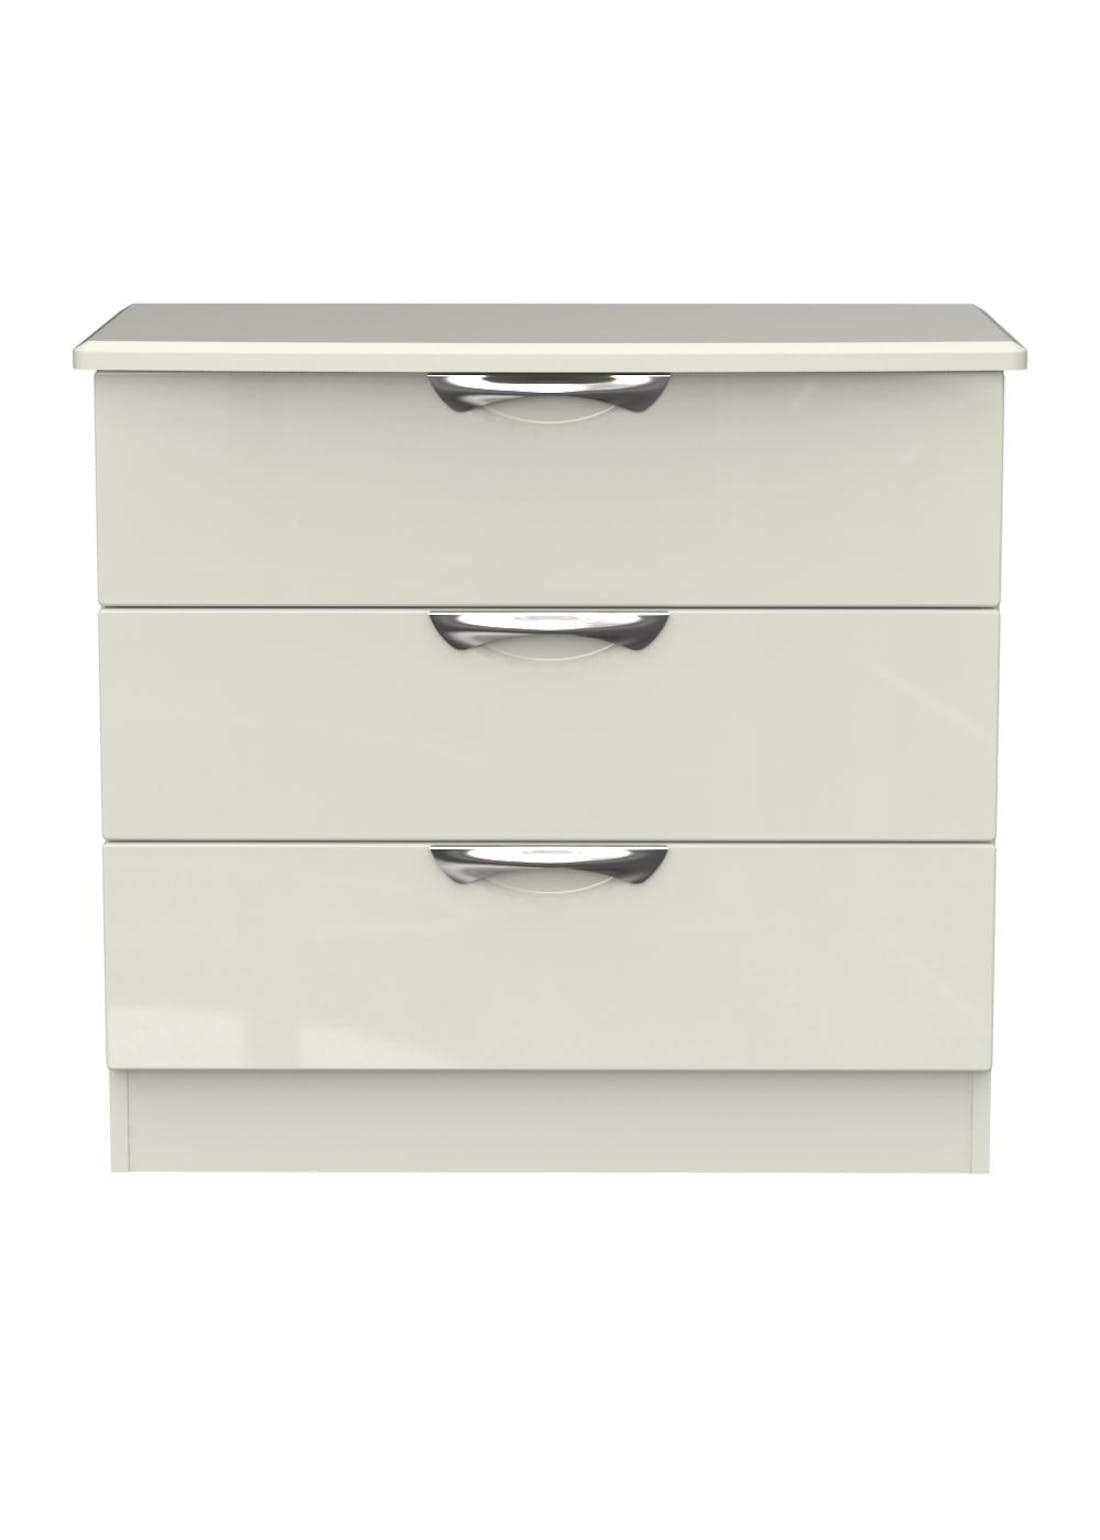 Swift Bordeaux 3 Drawer Chest (69.5cm x 76.5cm x 41.5cm)